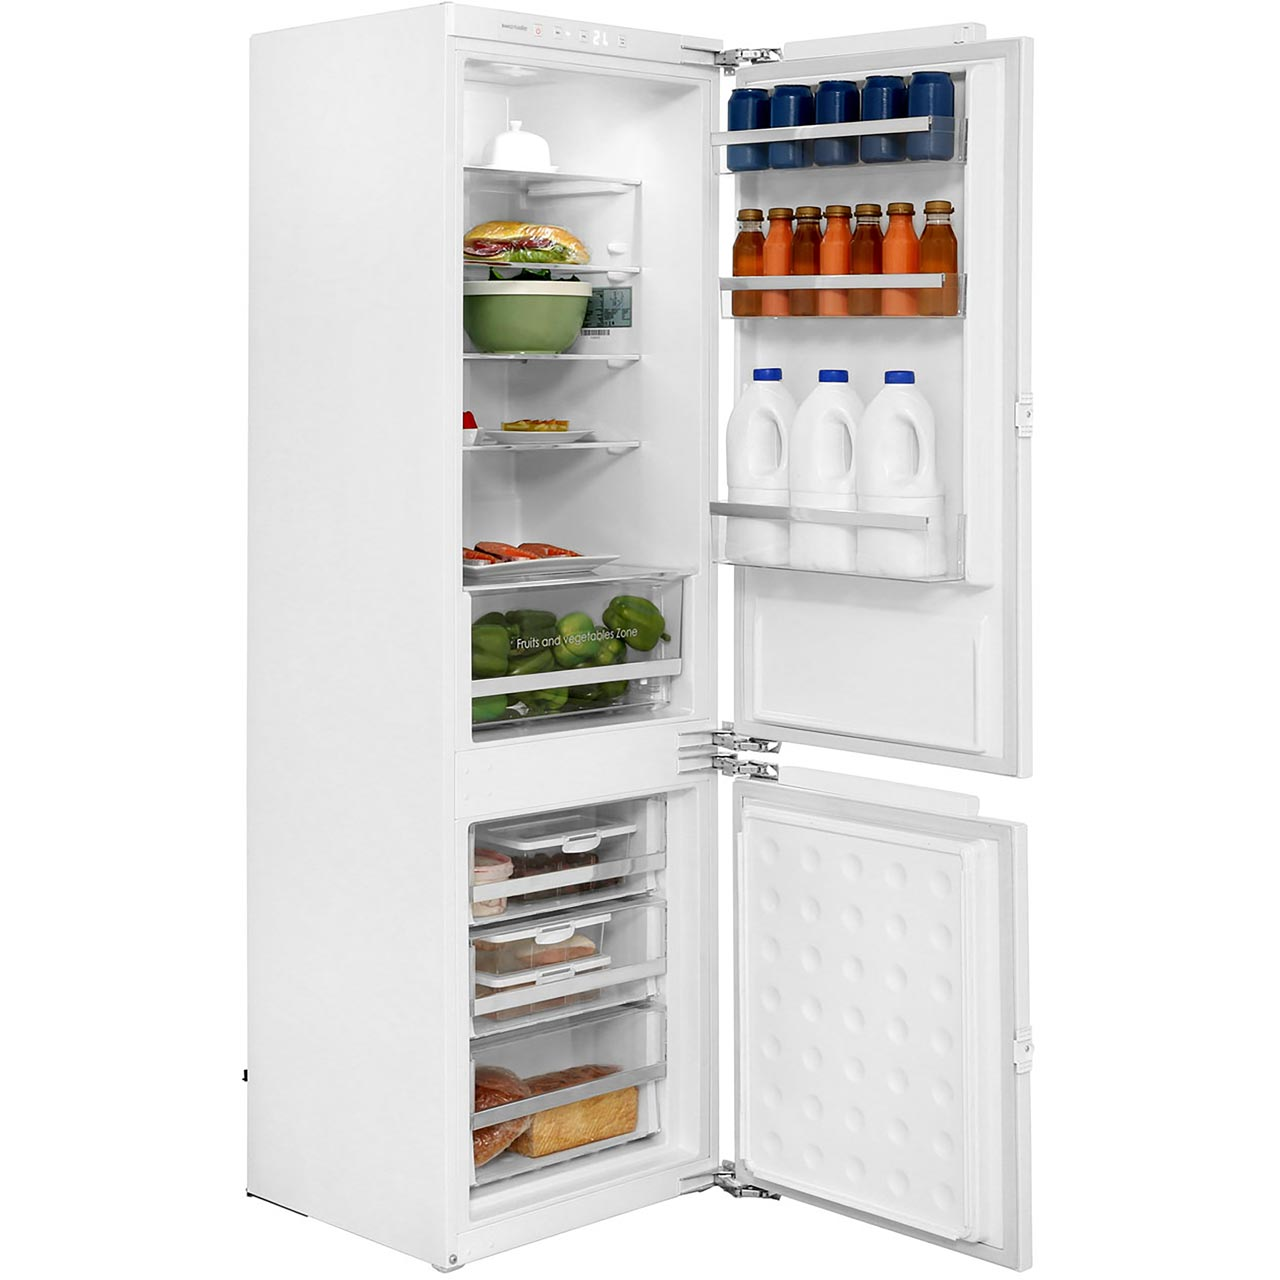 Rangemaster integrated fridge freezer